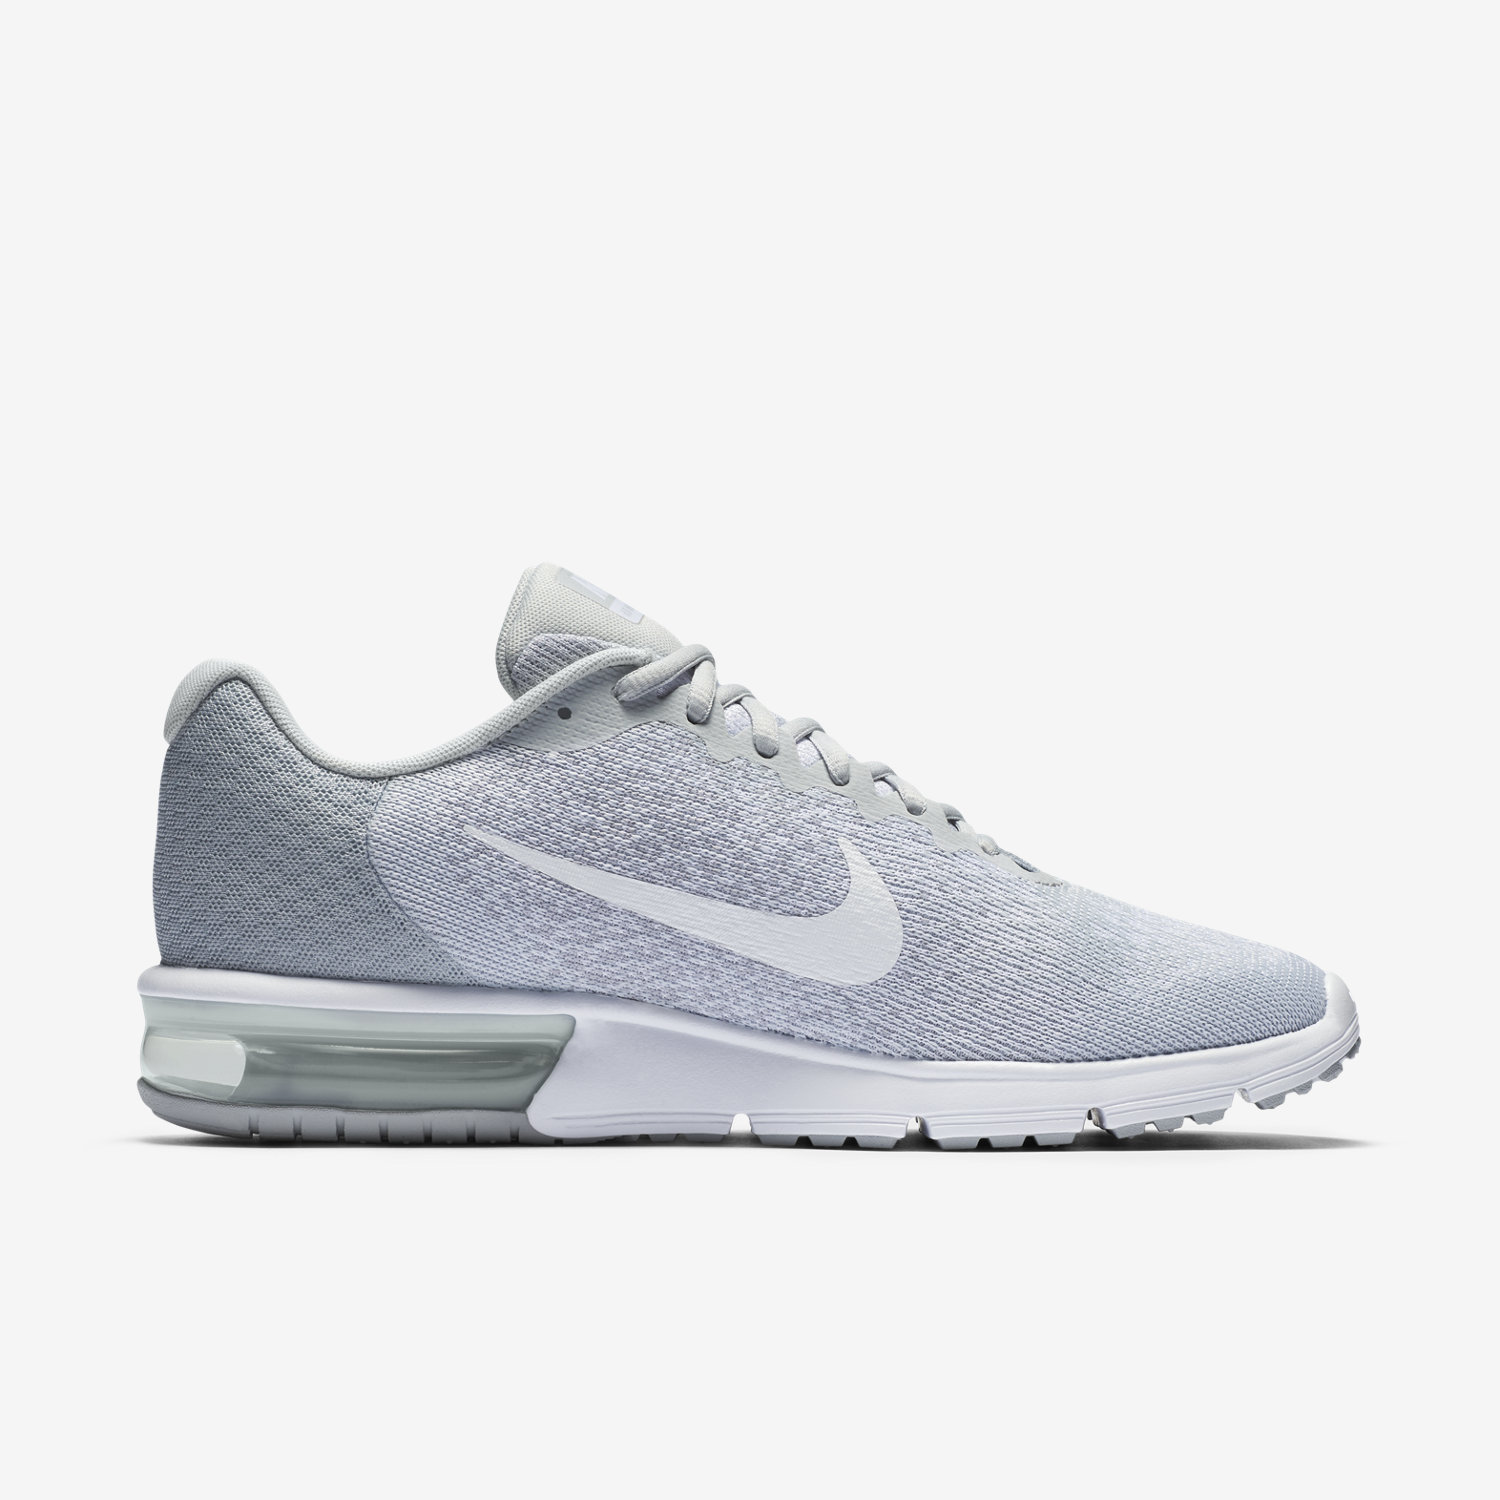 Cheap Nike air max 87 grey Choice One Engineering